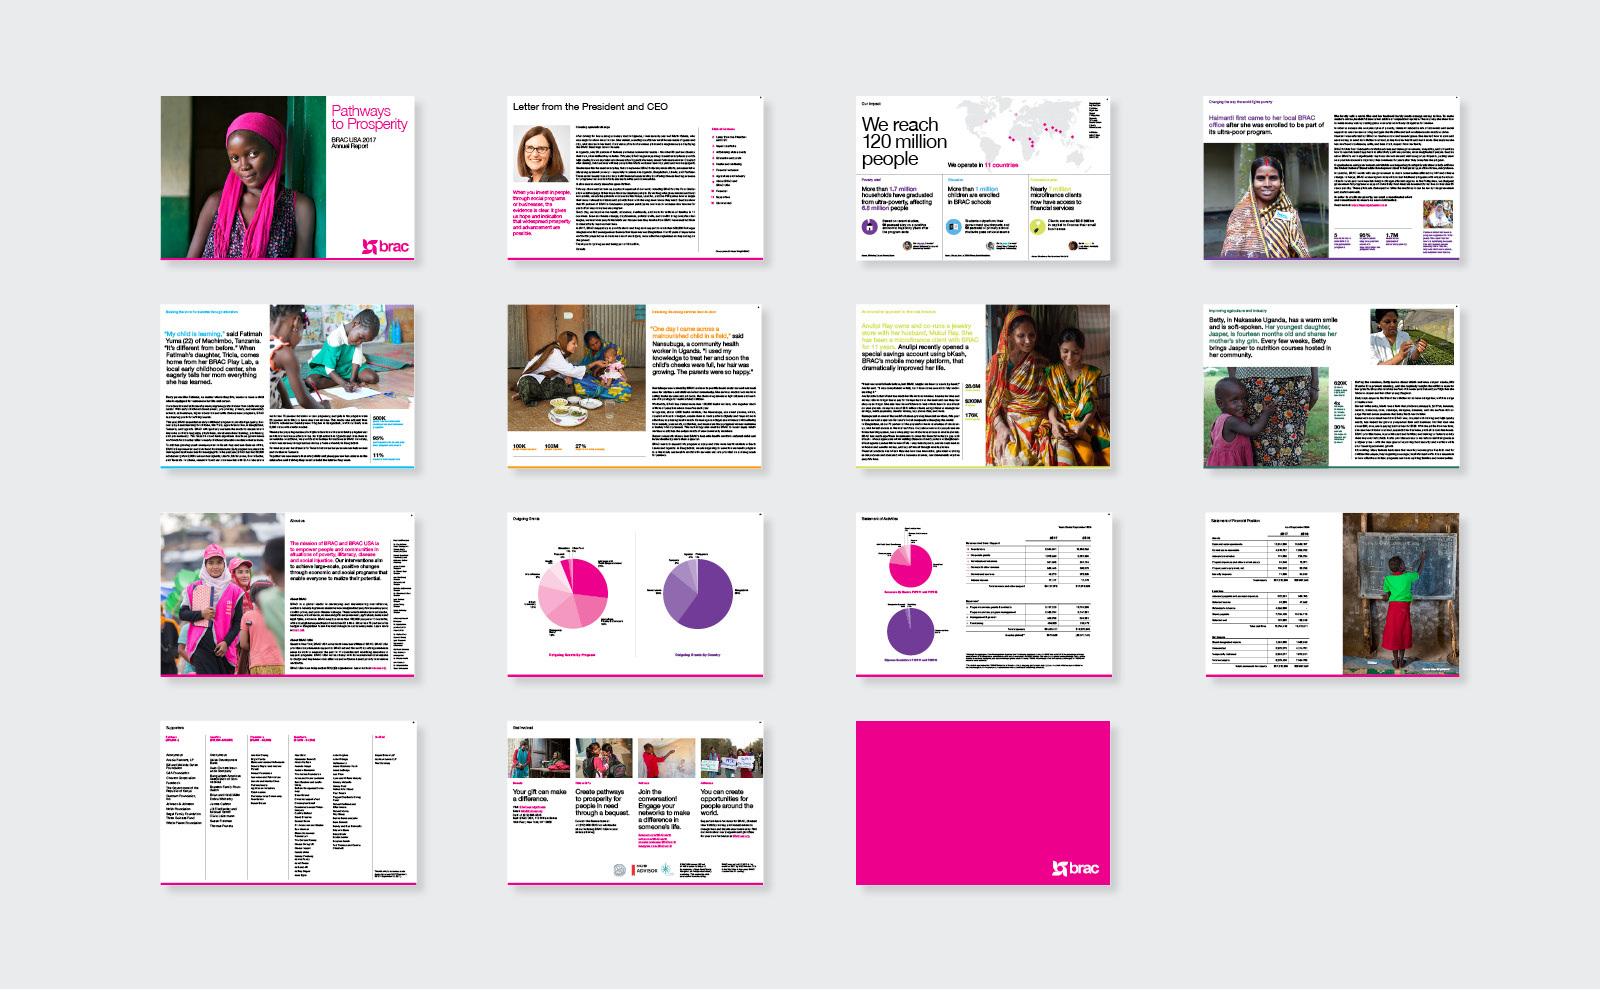 BRAC annual report design spreads